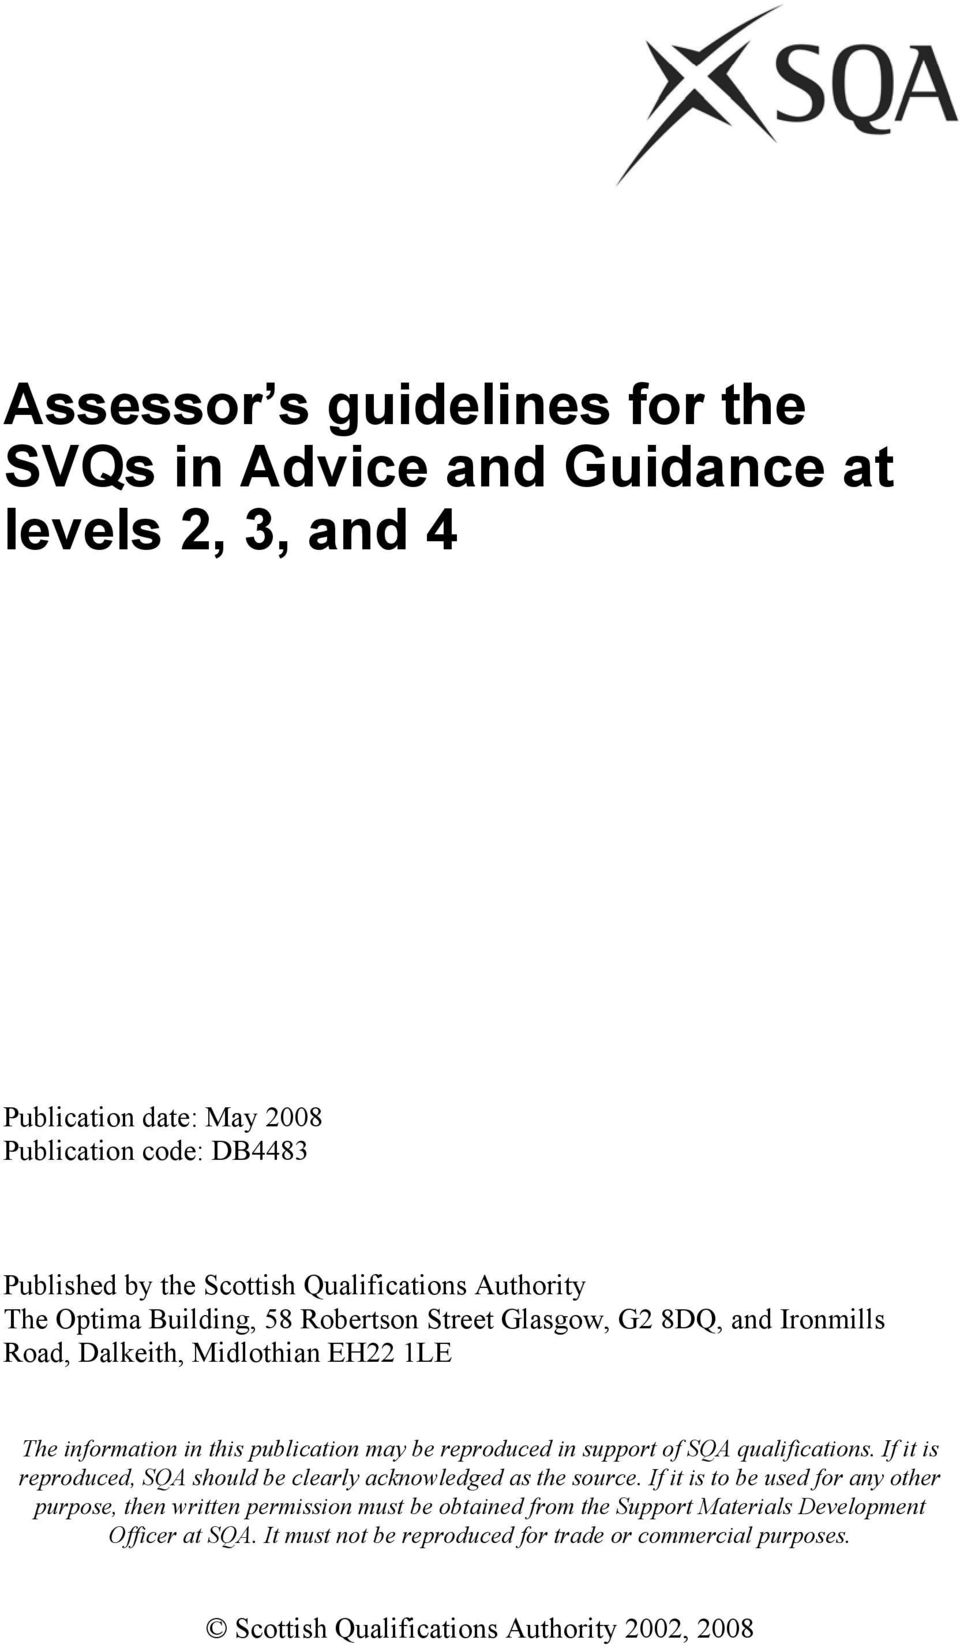 in support of SQA qualifications. If it is reproduced, SQA should be clearly acknowledged as the source.